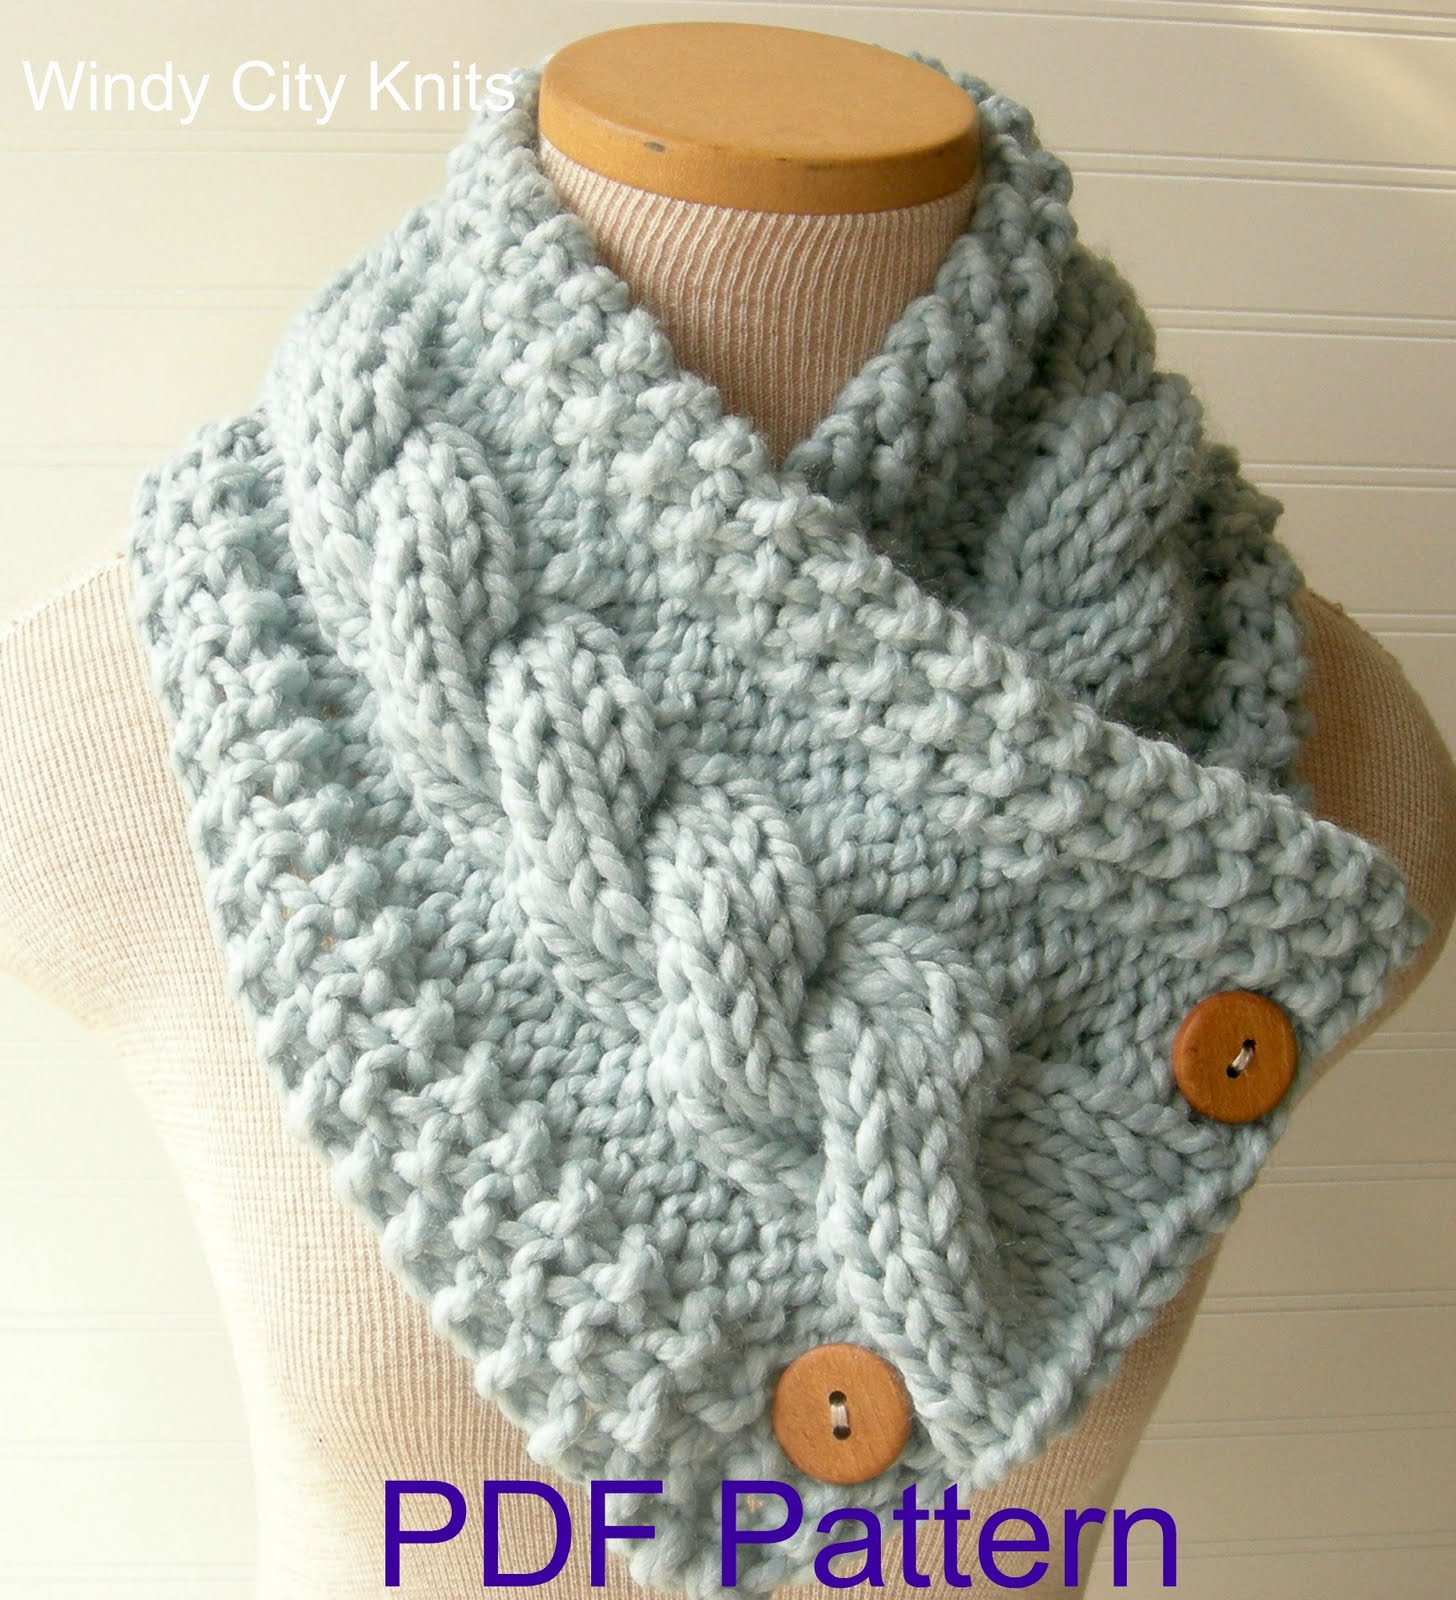 Knitting Pattern Cowl Scarf : WindyCityKnits: Knit Cable Cowl Scarf Pattern Pdf